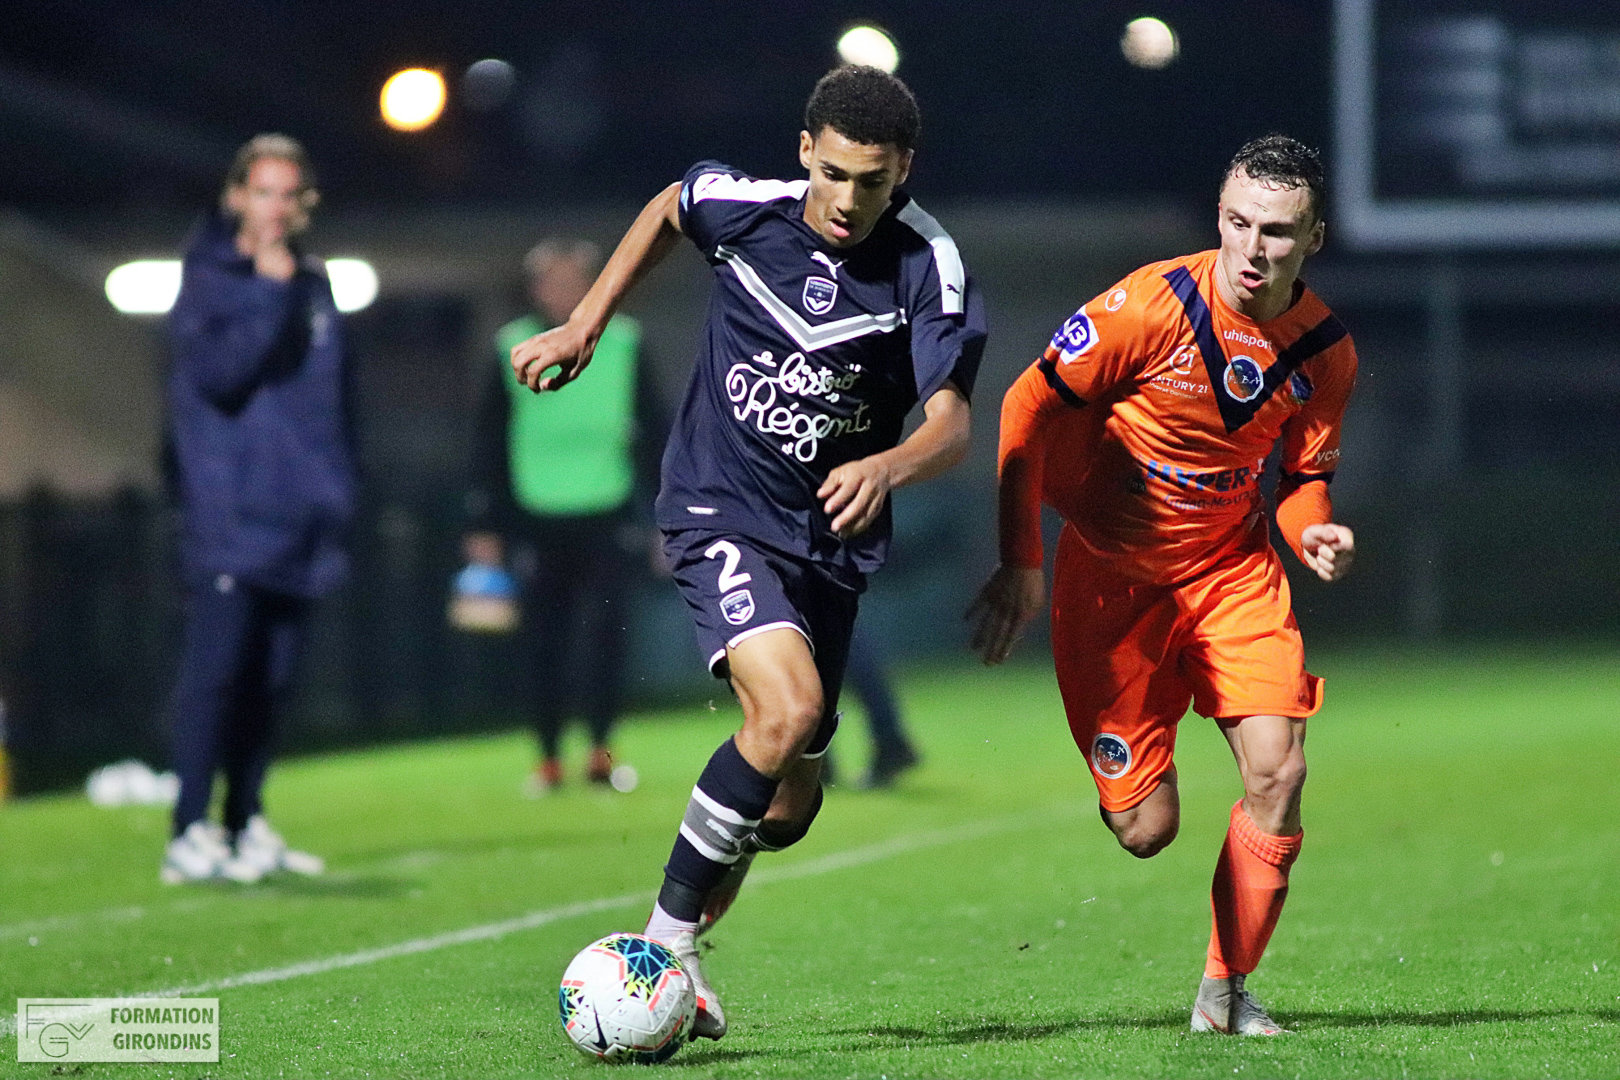 Cfa Girondins : Les photos de Bordeaux B - FCBA - Formation Girondins